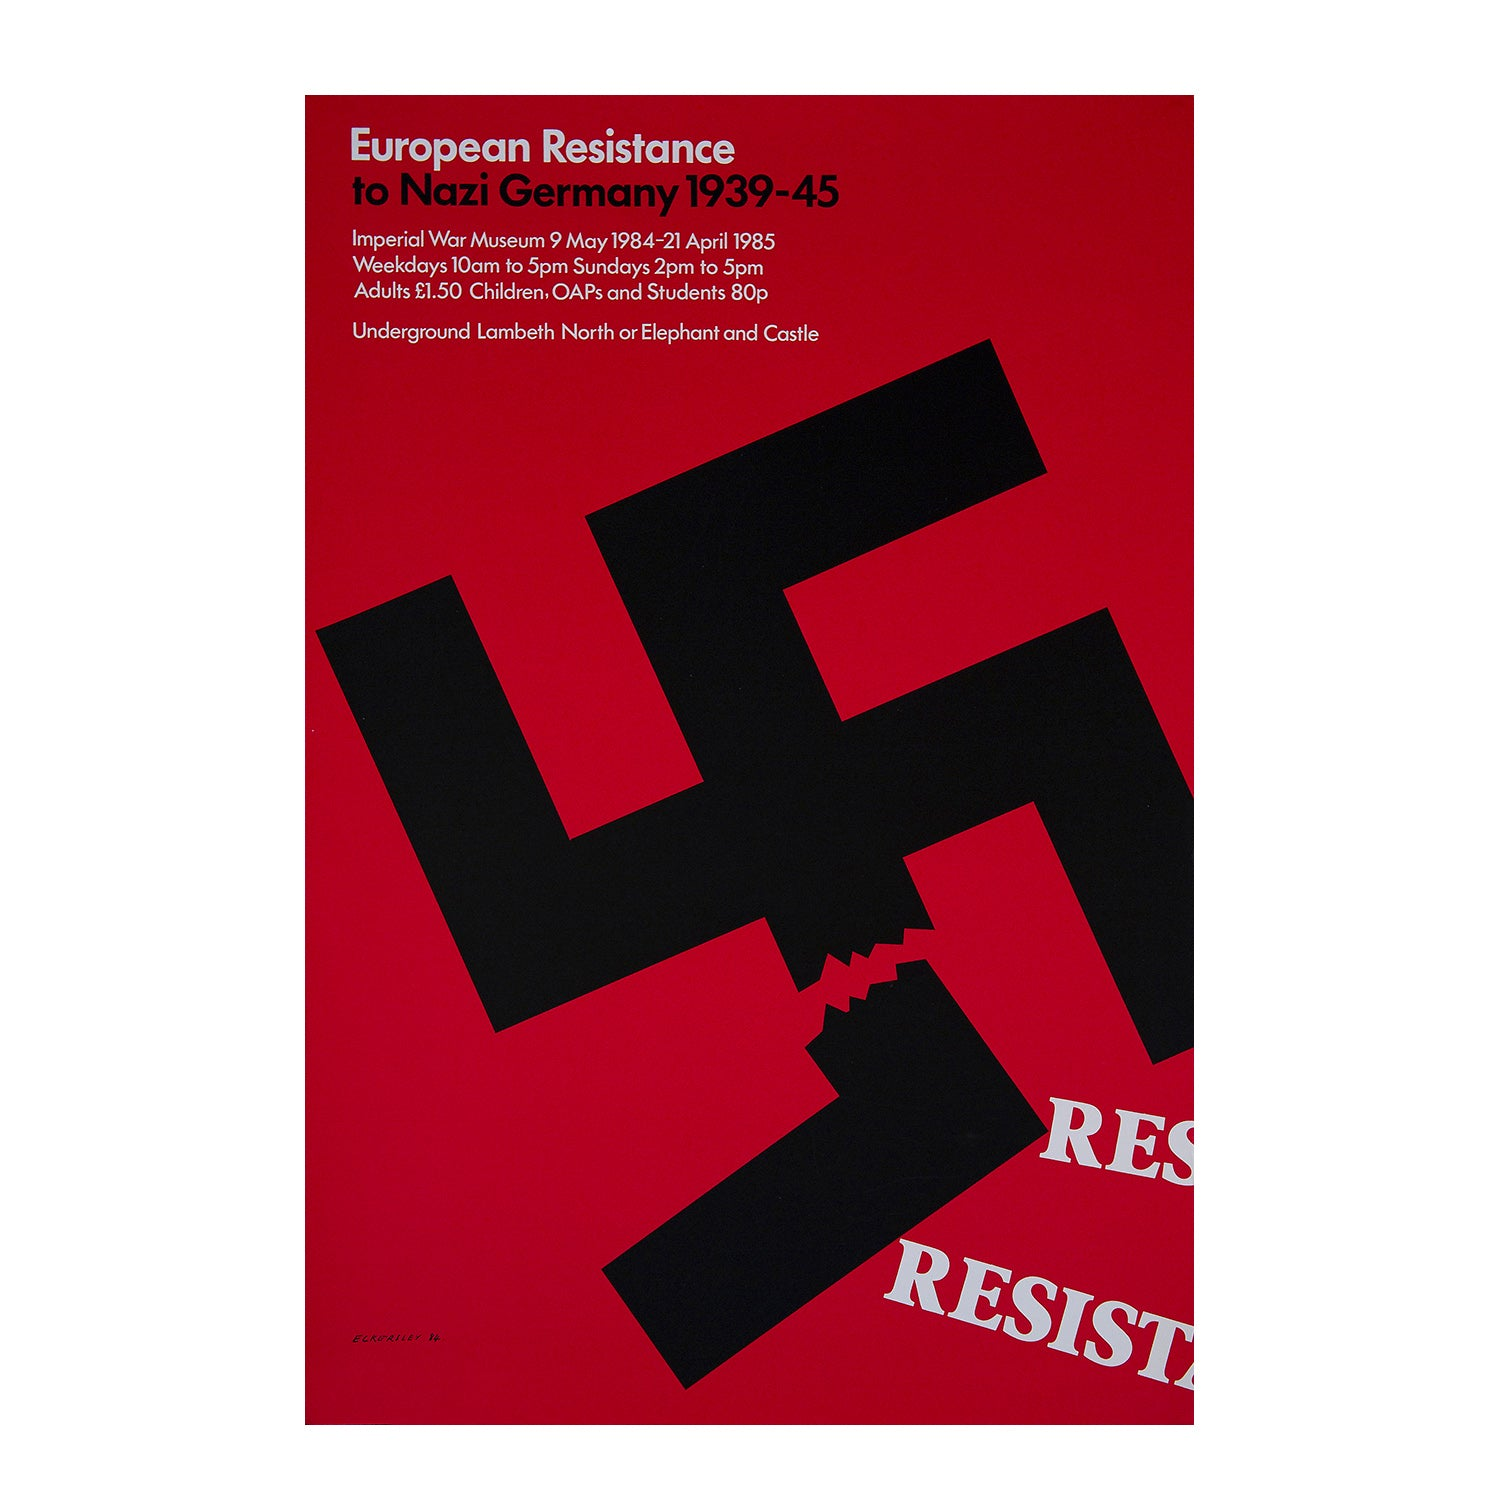 European Resistance to Nazi Germany 1939-45